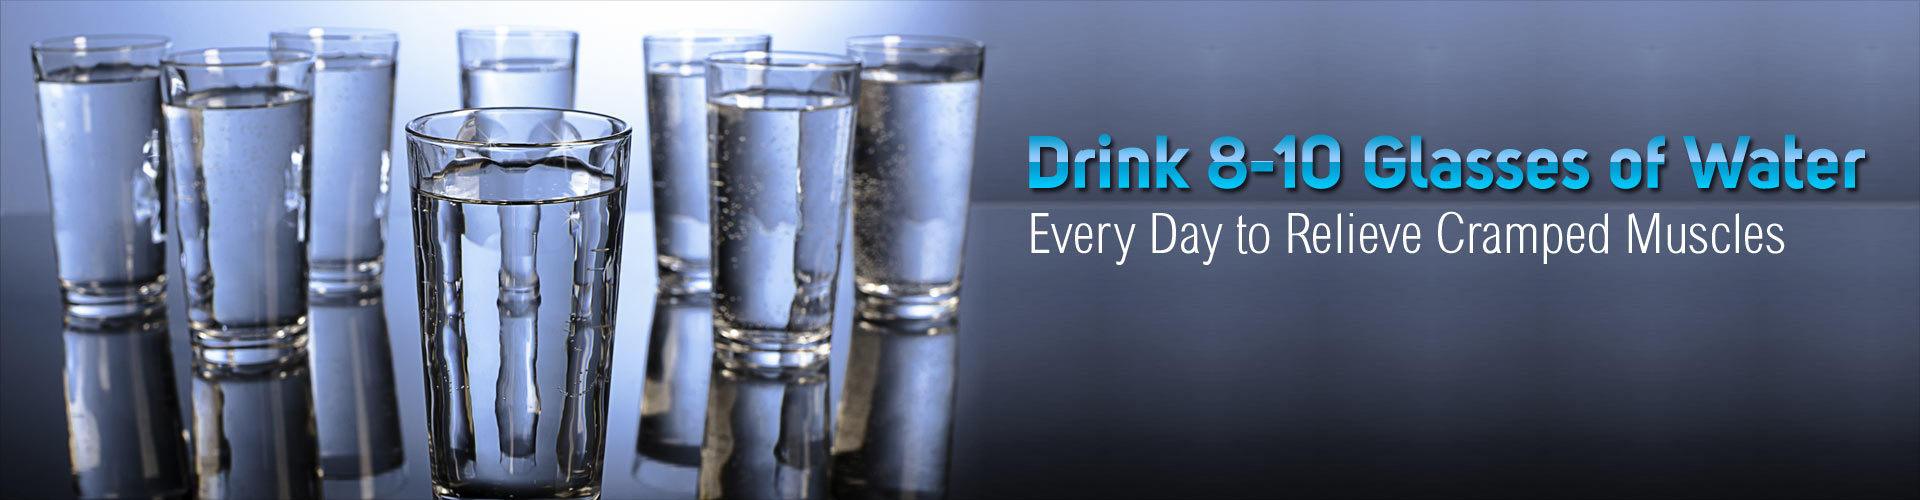 Drink 8-10 Glasses of Water Every Day to Relieve Tight and Cramped Muscles